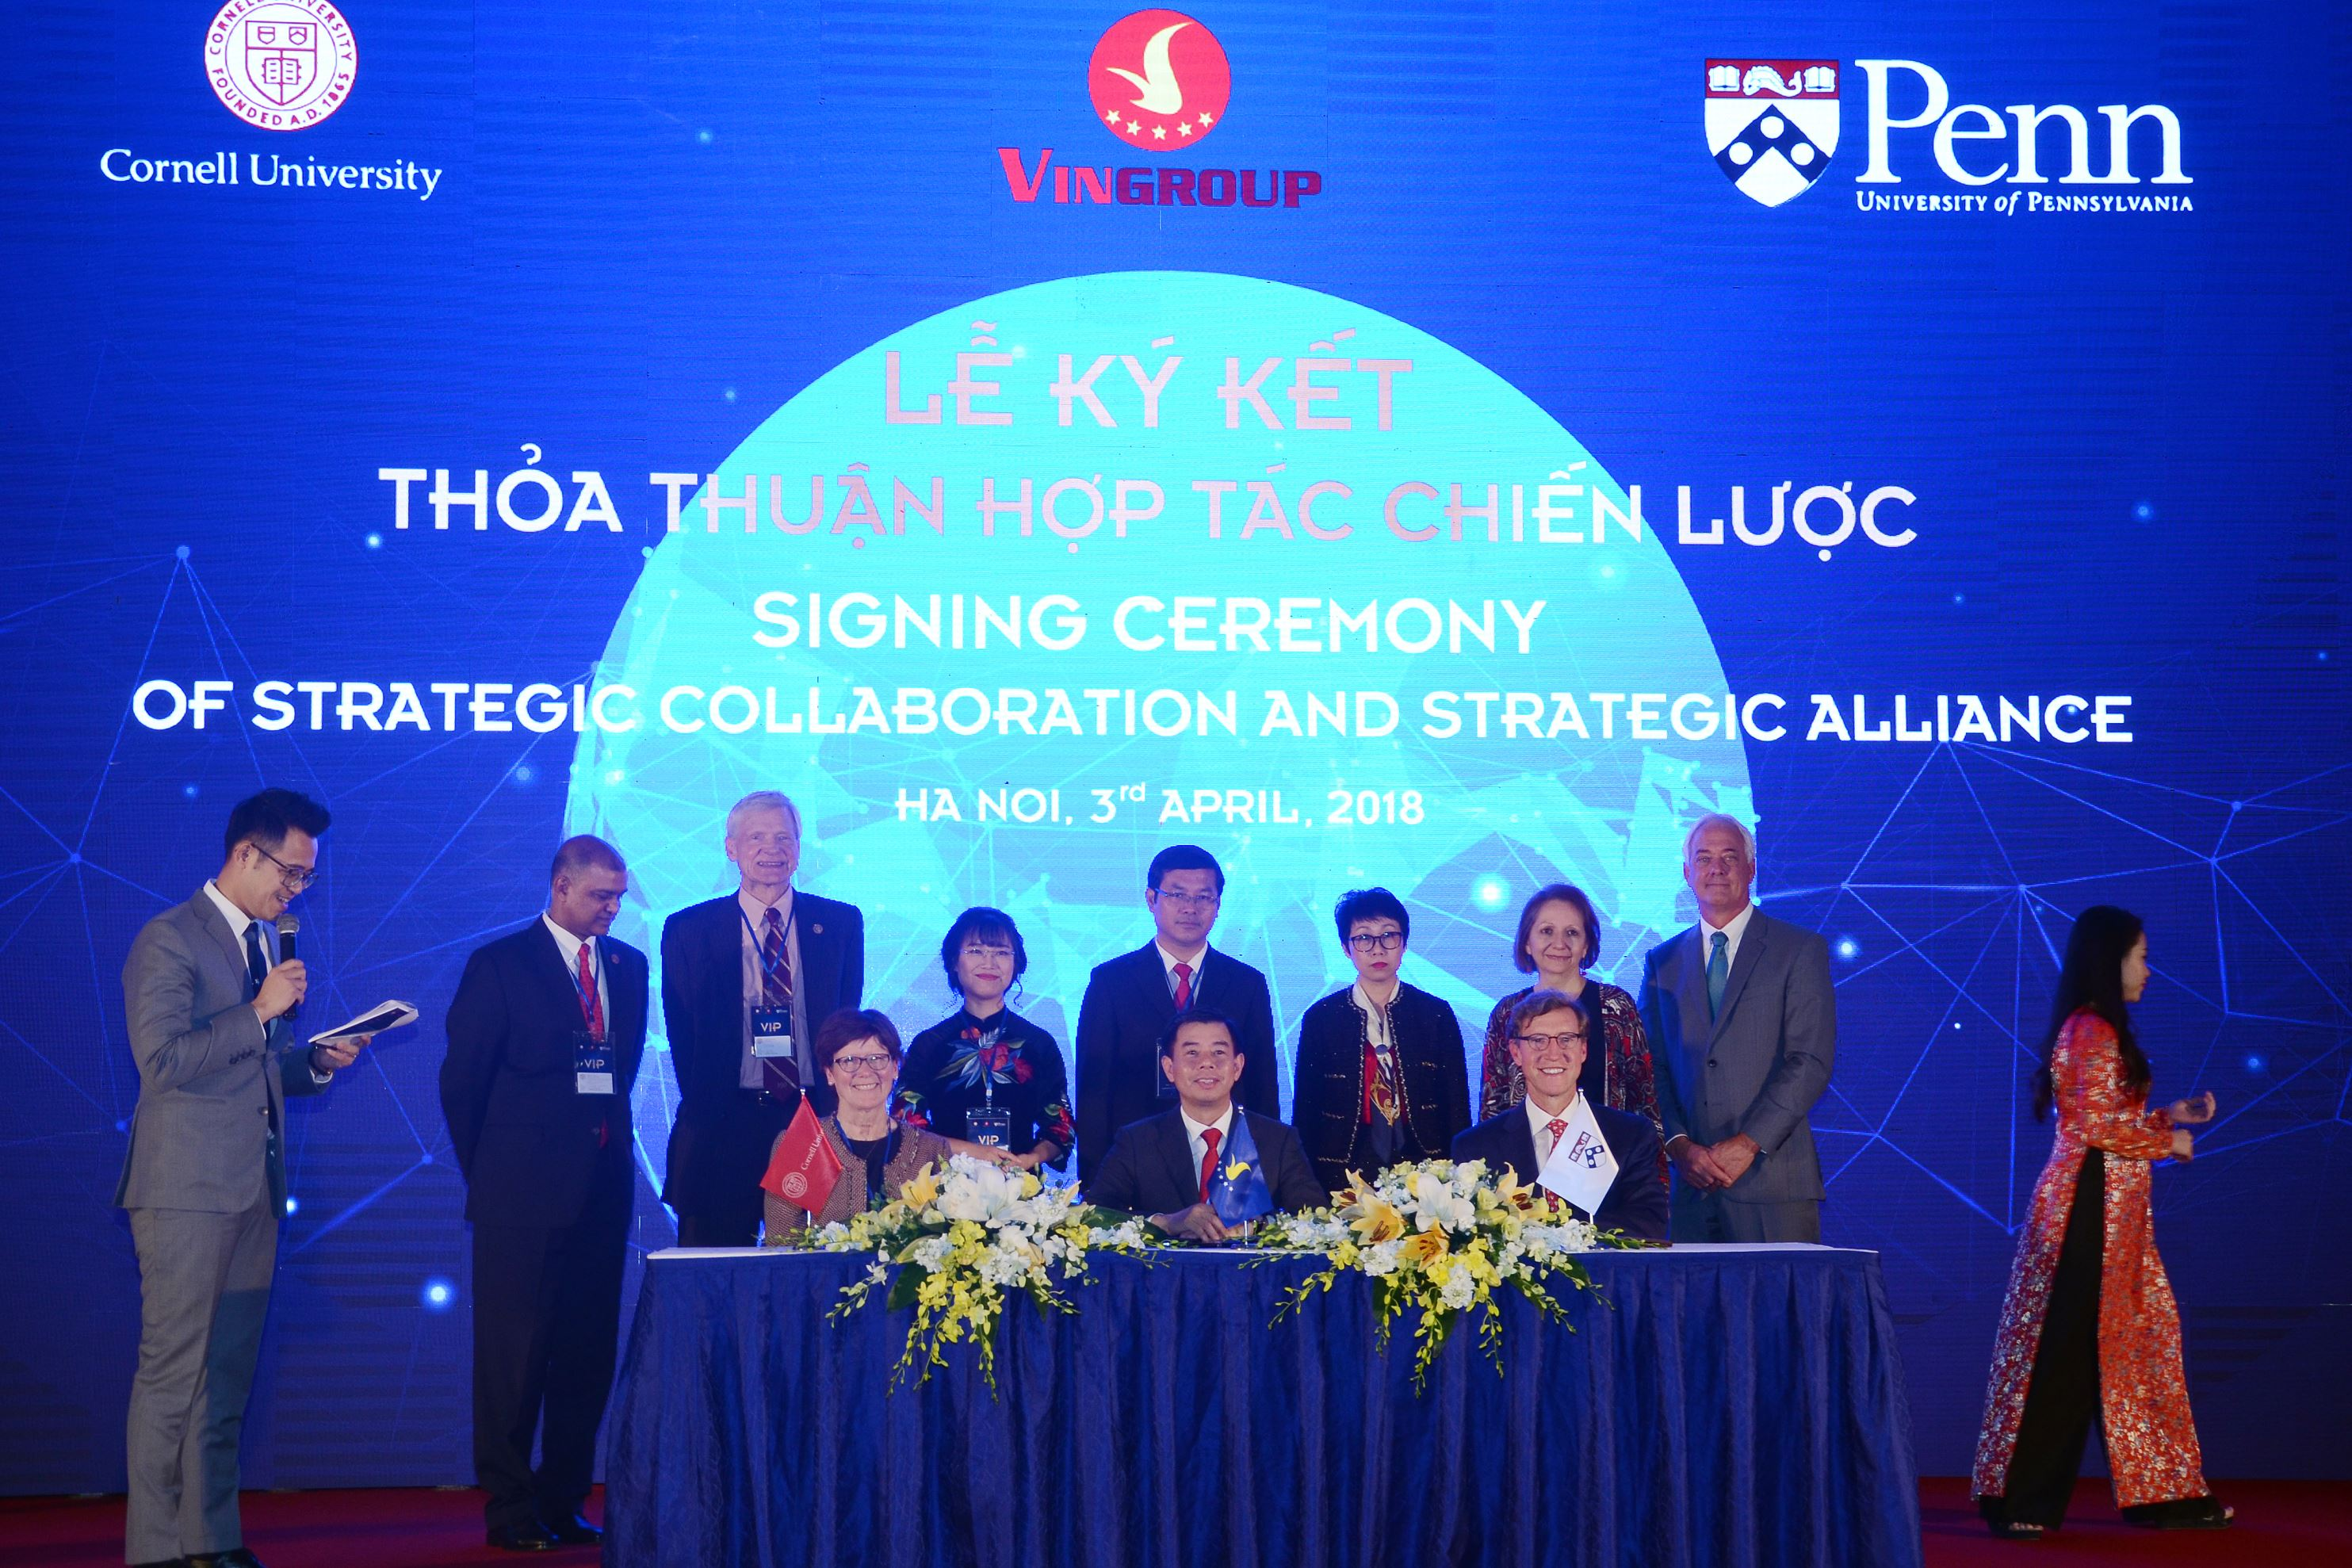 Vingroup-Penn Alliance signing ceremony of strategic collaboration and alliance